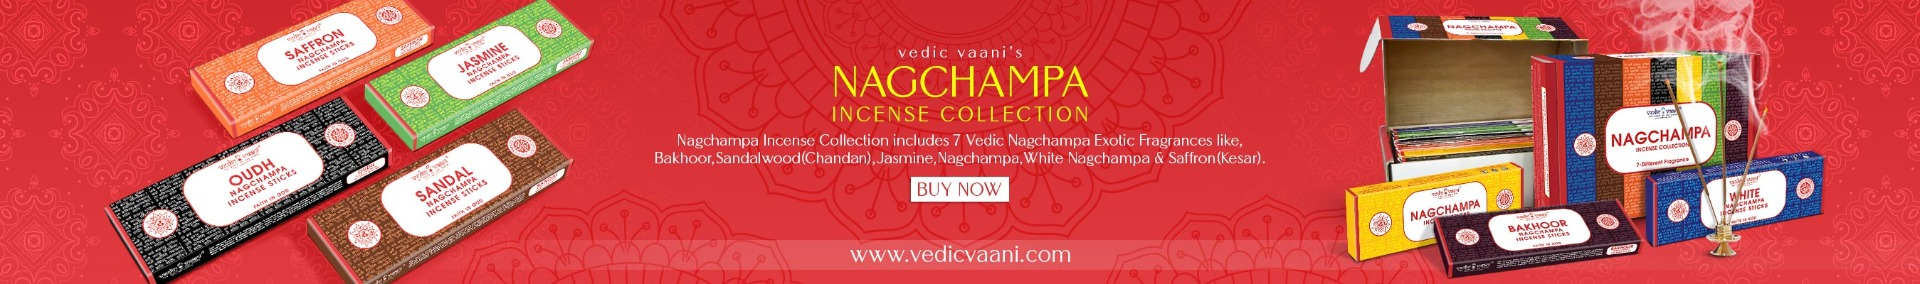 Nagchampa Incense Sticks